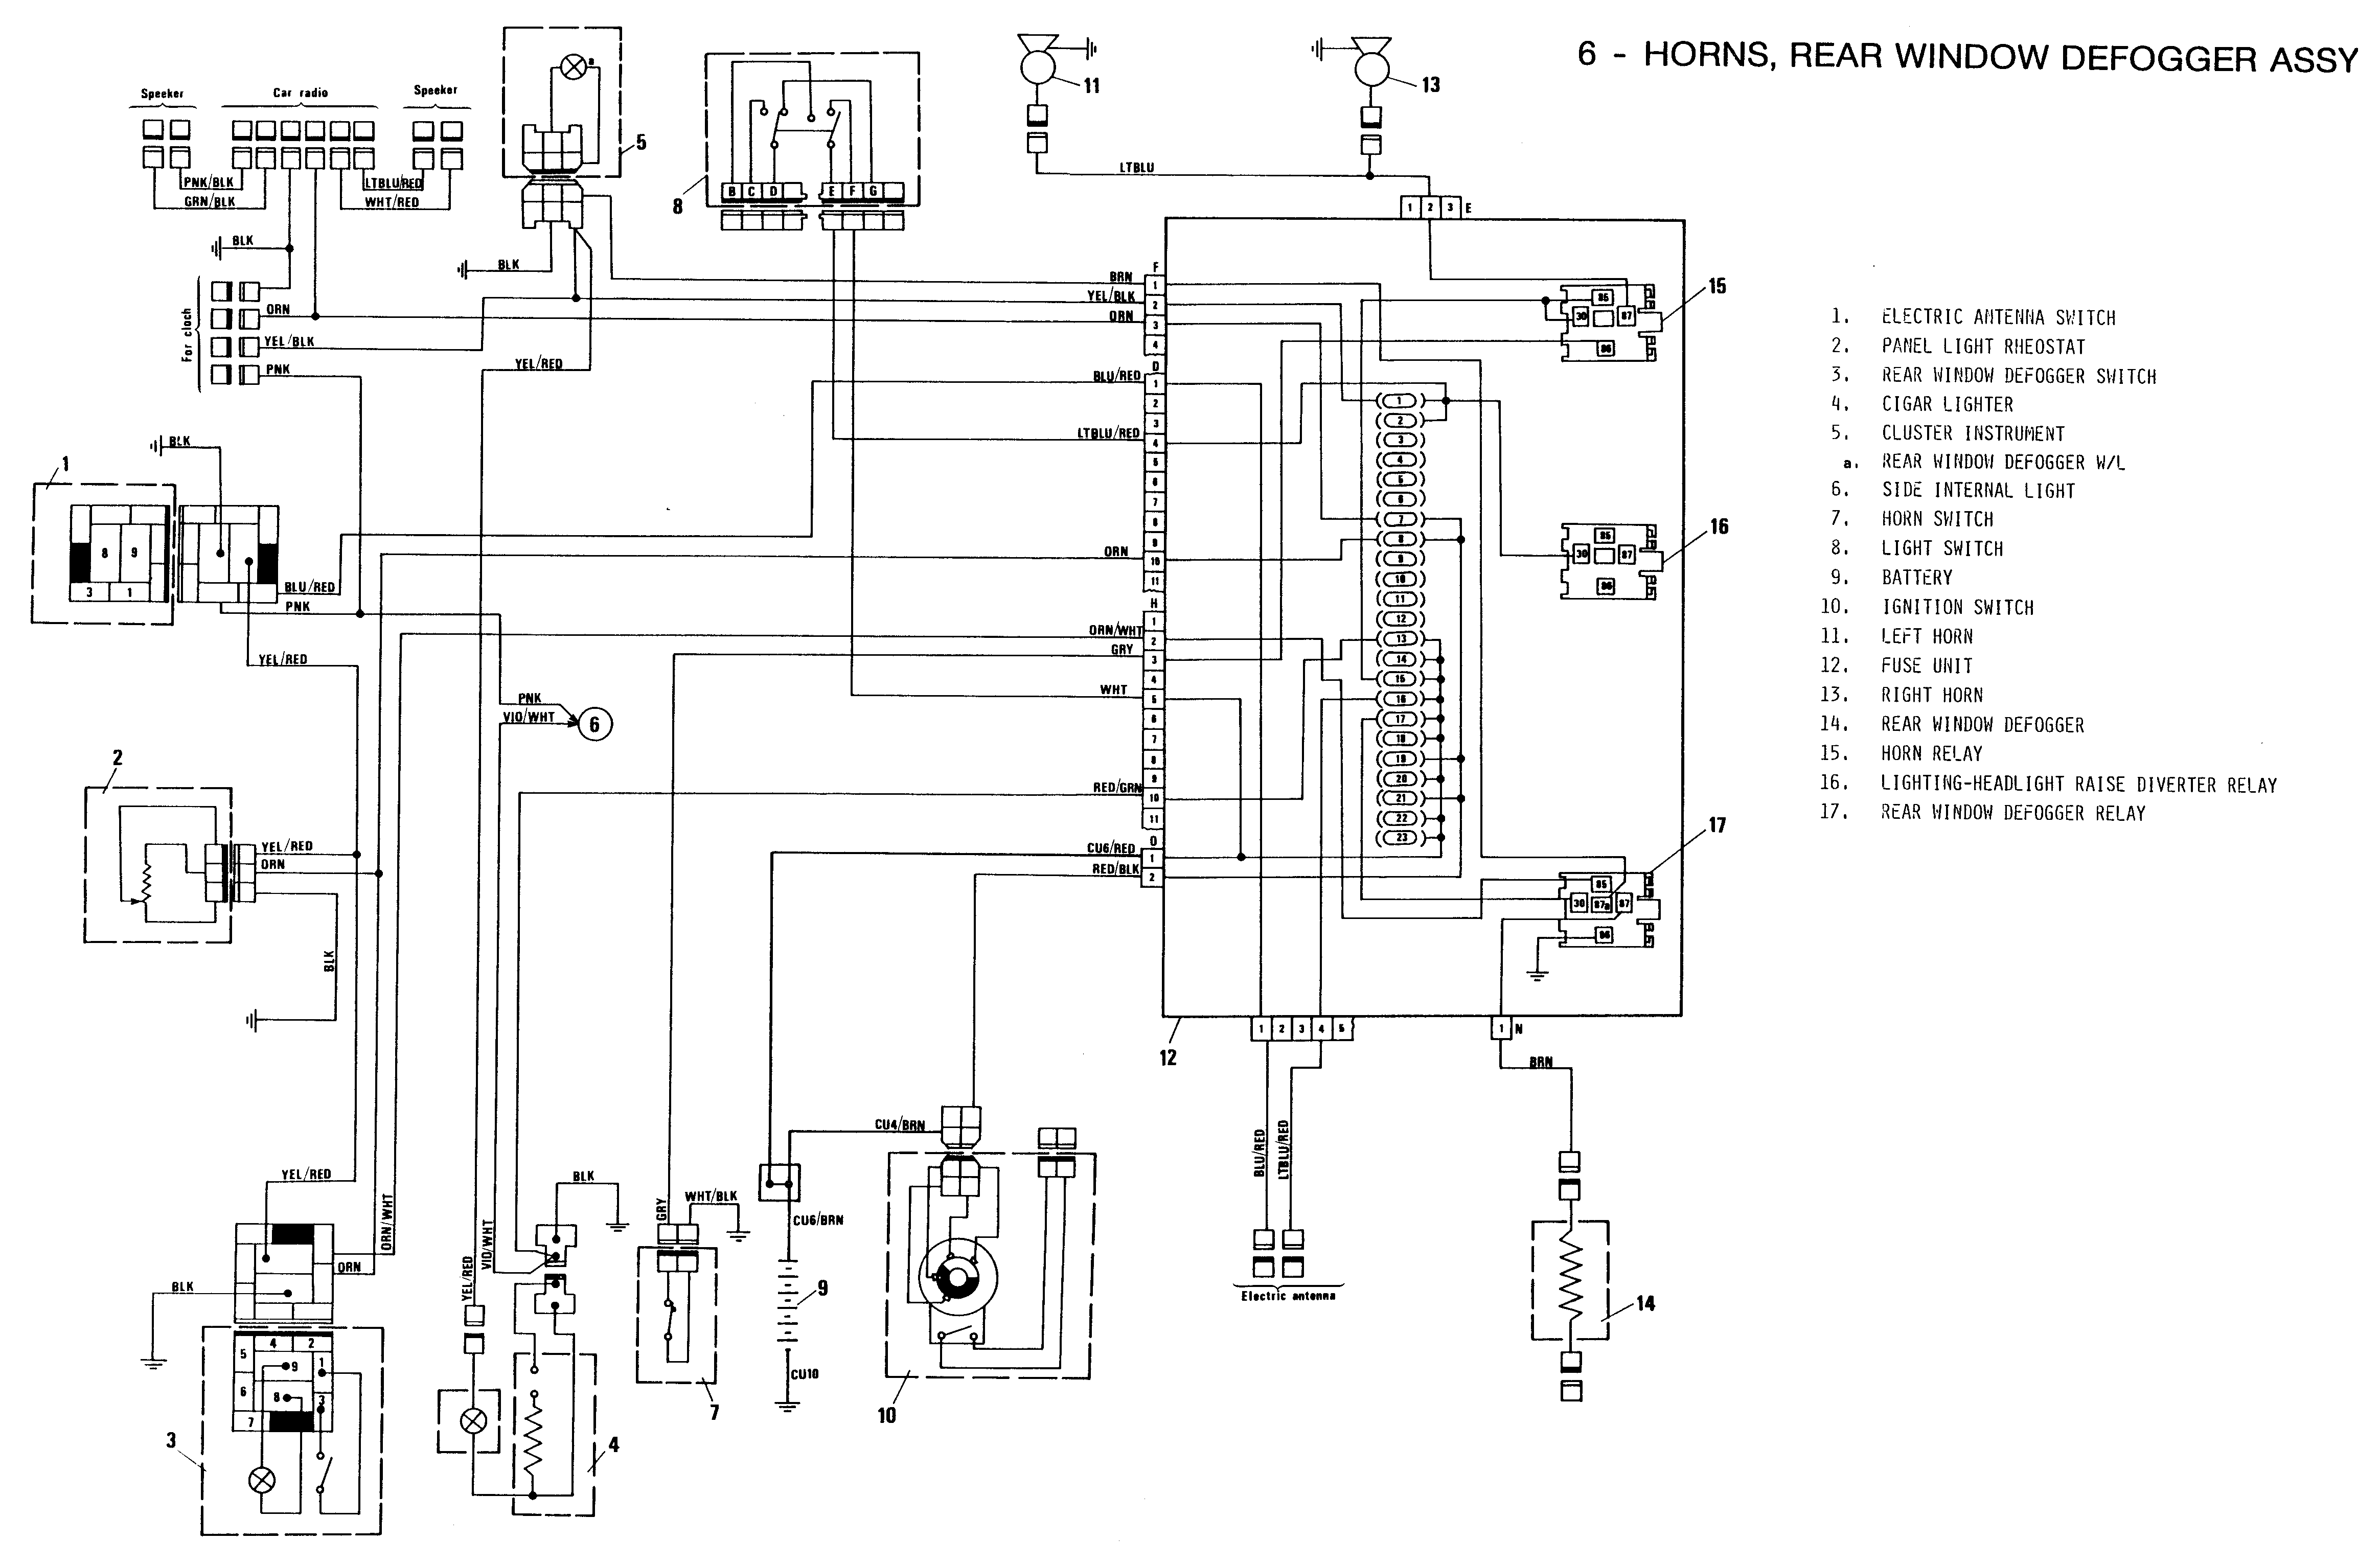 bertone_6 x1 wiring diagram light switch wiring diagram \u2022 wiring diagrams fiat punto fuse box diagram 2007 at honlapkeszites.co